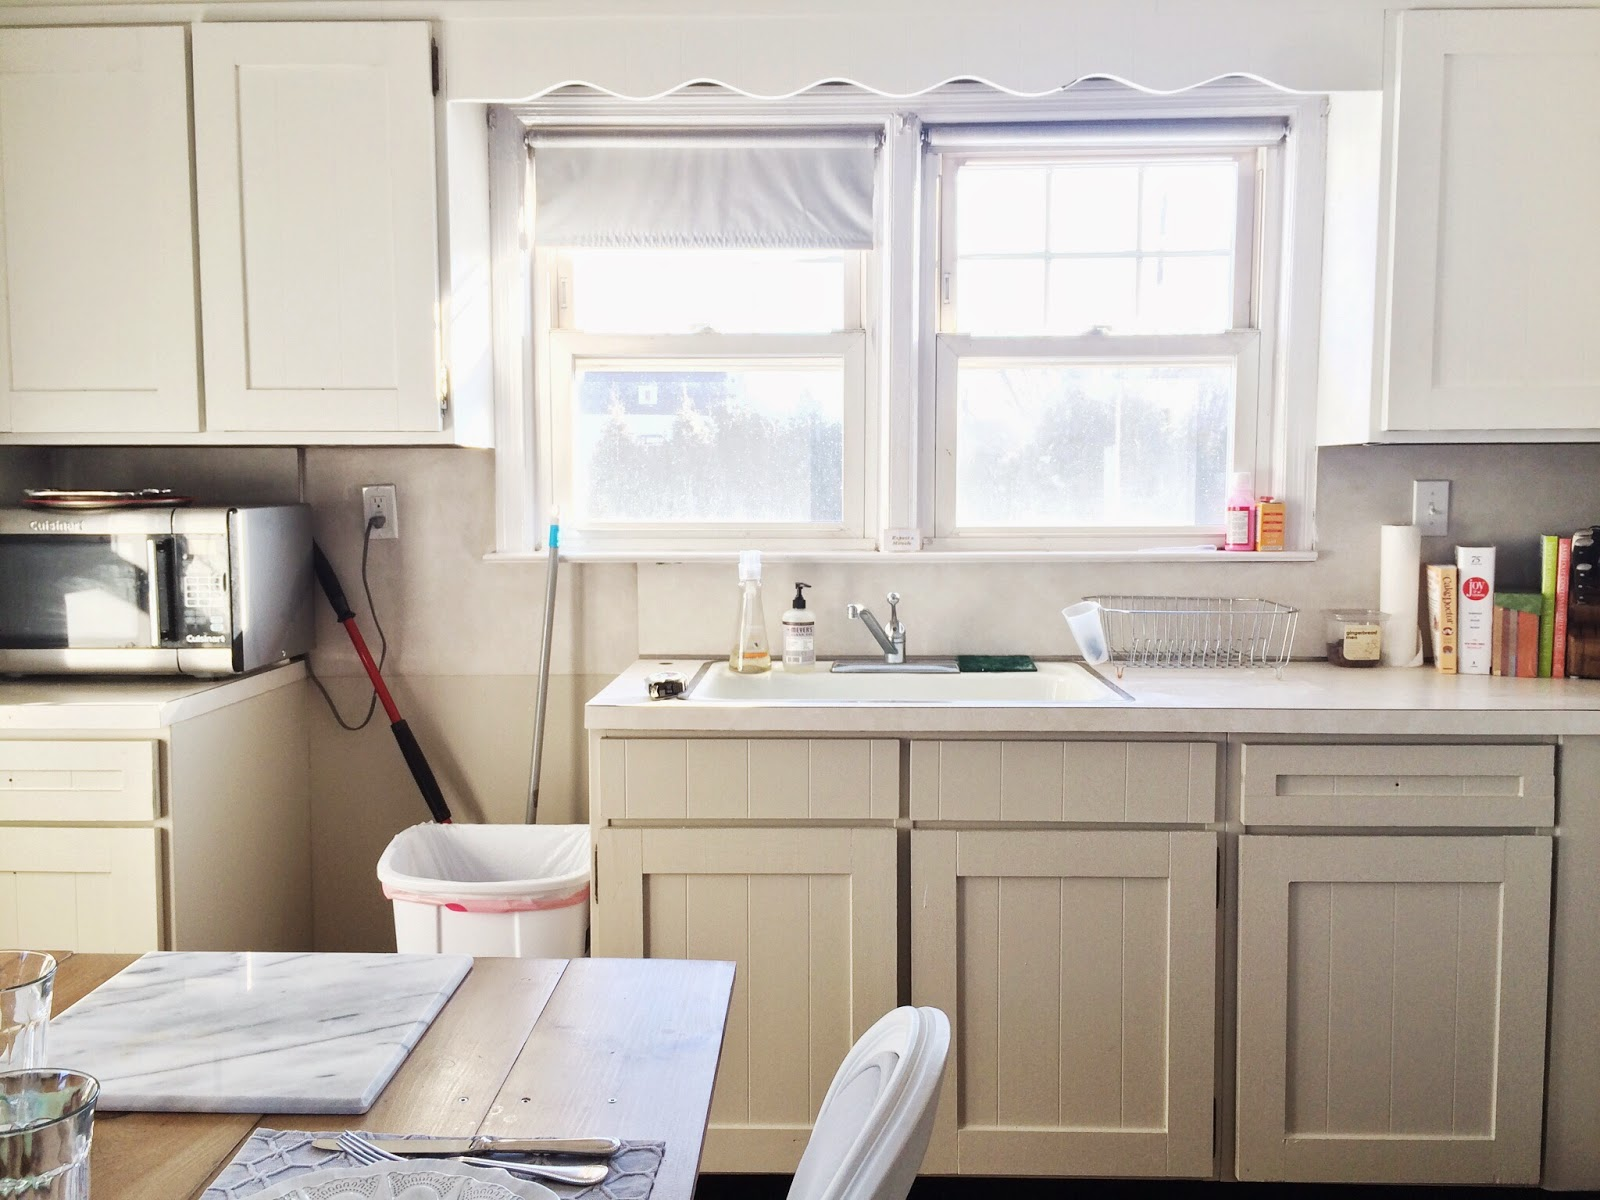 kitchen trim light fixtures for how to paint add shaker cabinets by georgia grace